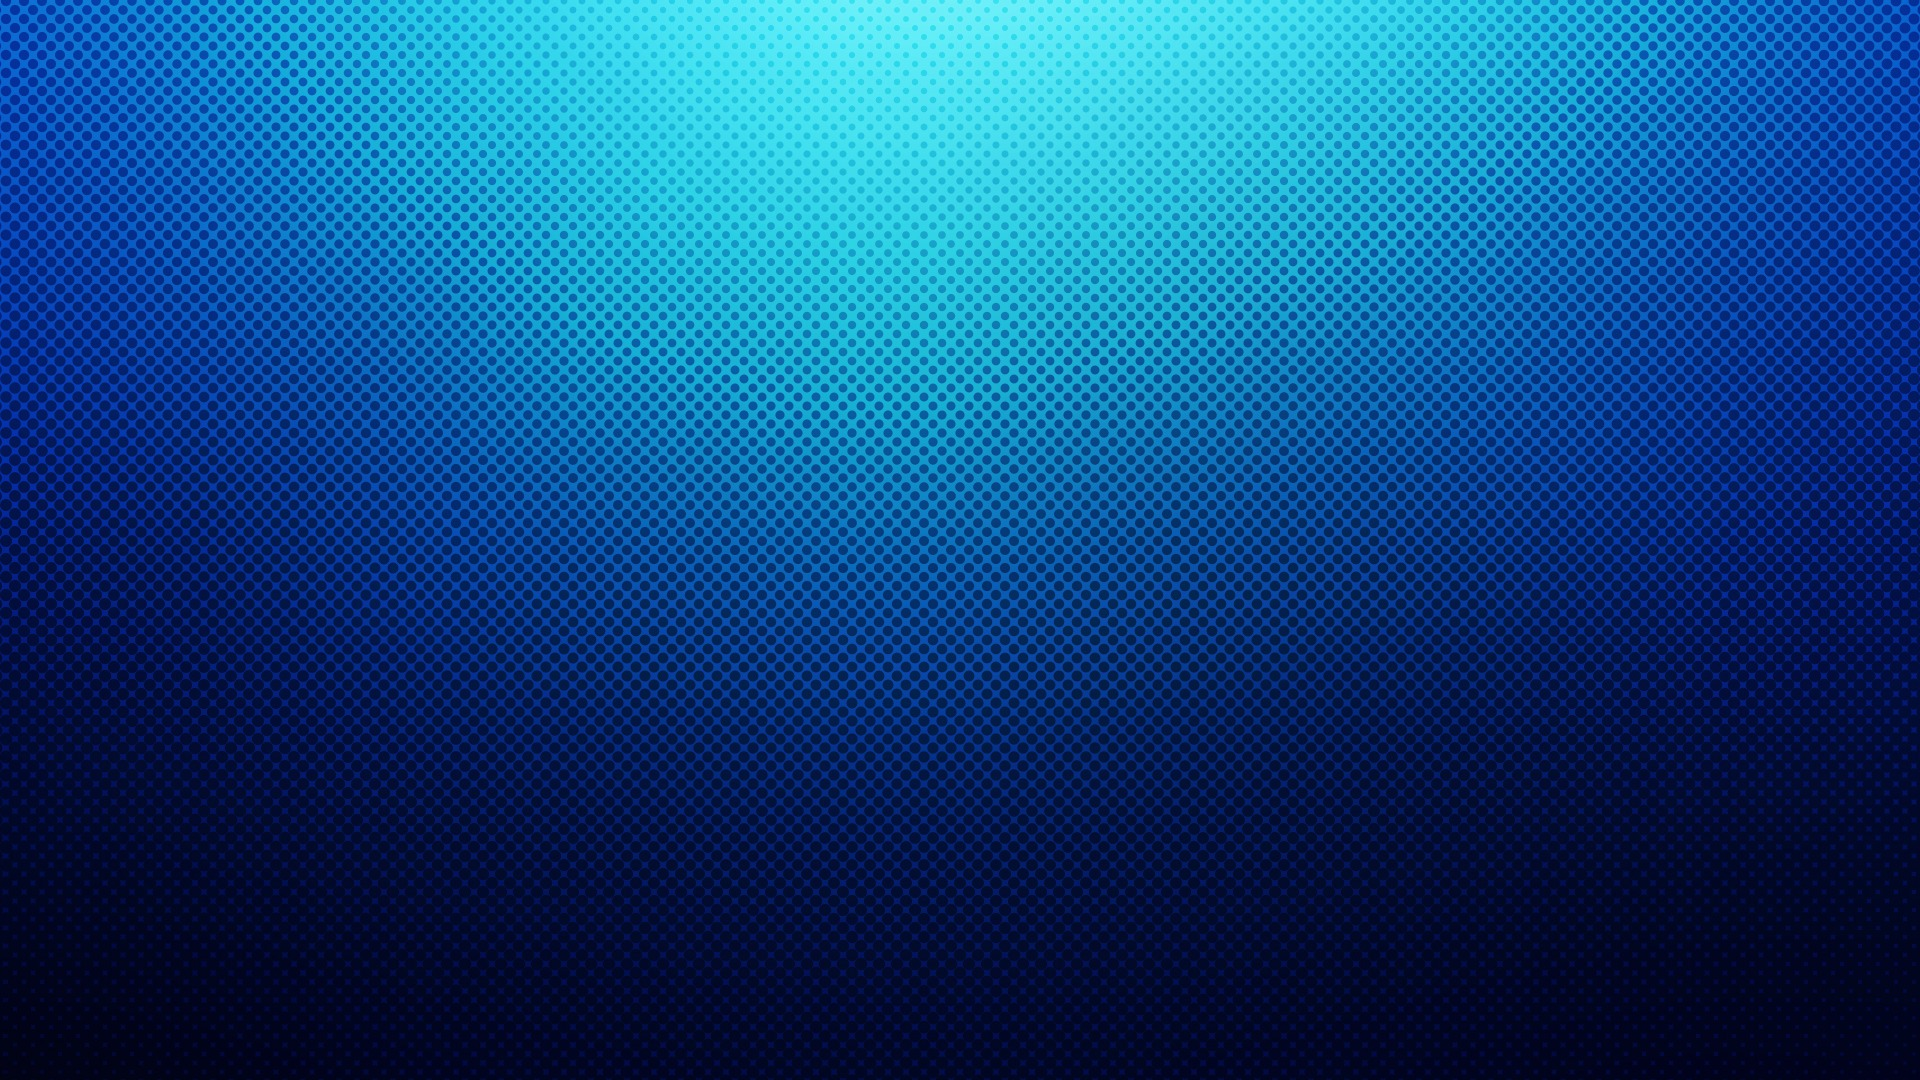 Loyalty Solutions Nigeria Backgrounds Blue Gradient Hd